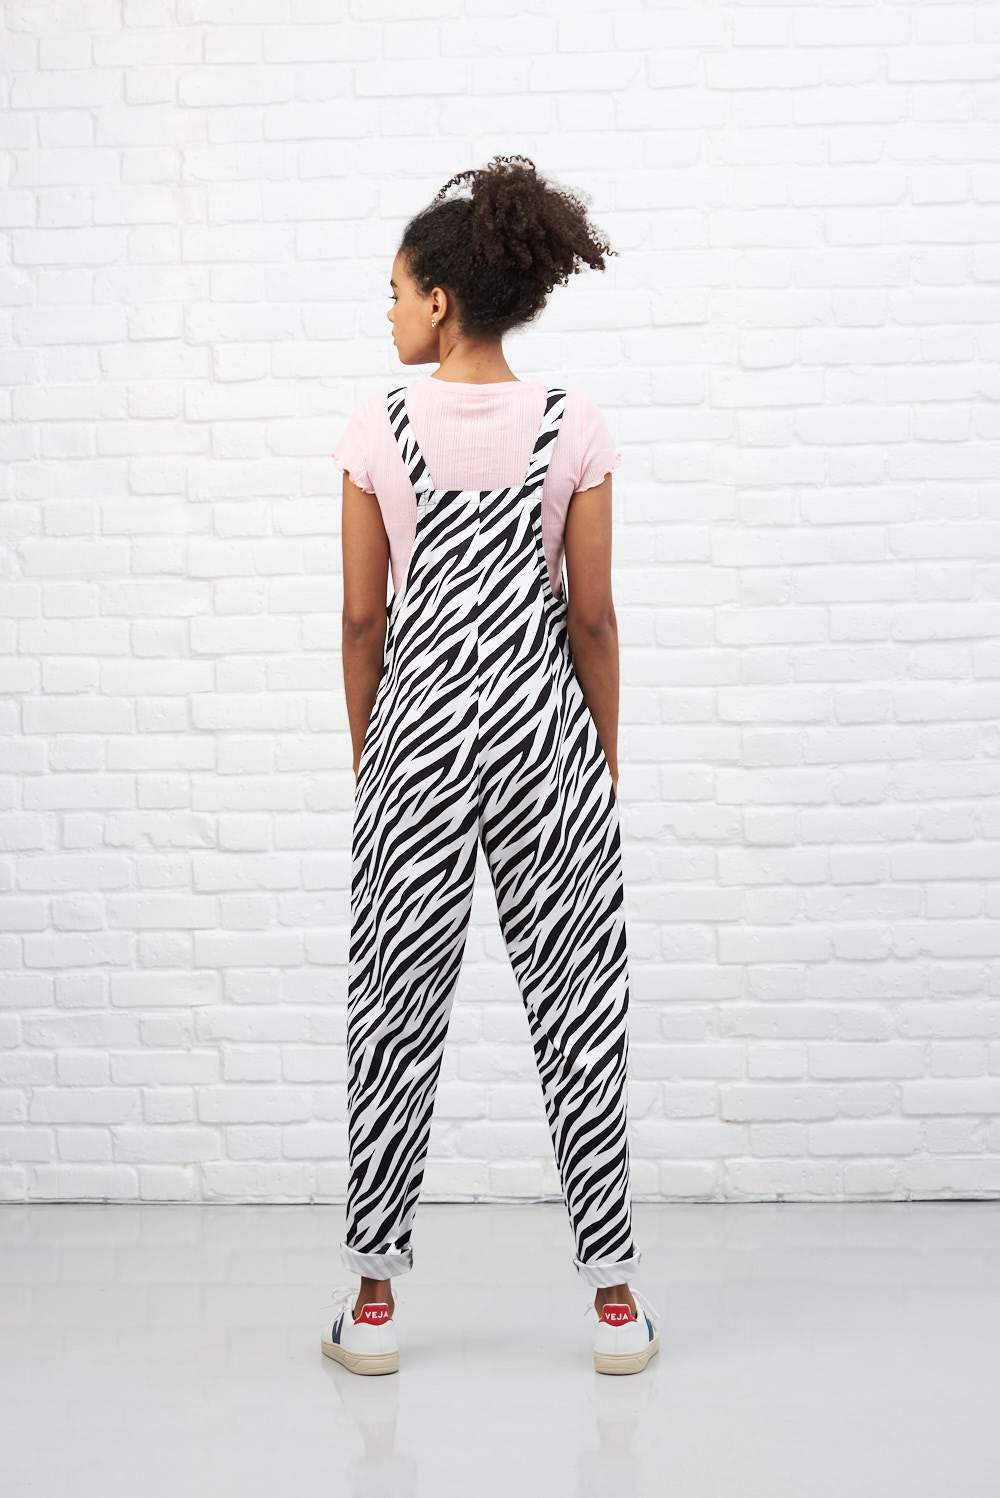 Lucy & Yak Dungarees 'Zebra' Limited Edition Dungarees